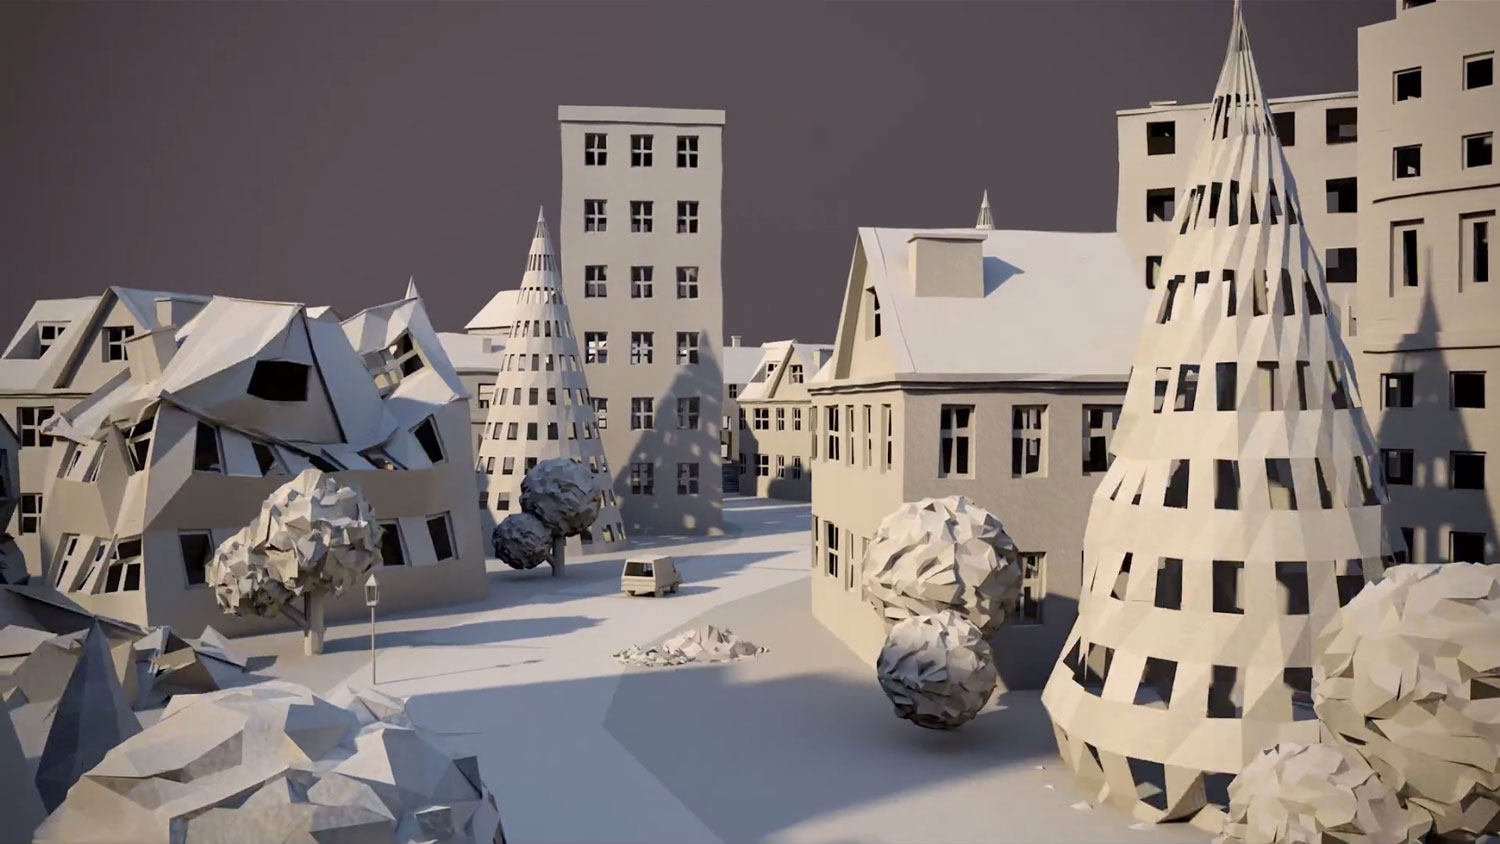 Paper Animation by Maciek Janicki | Yellowtrace